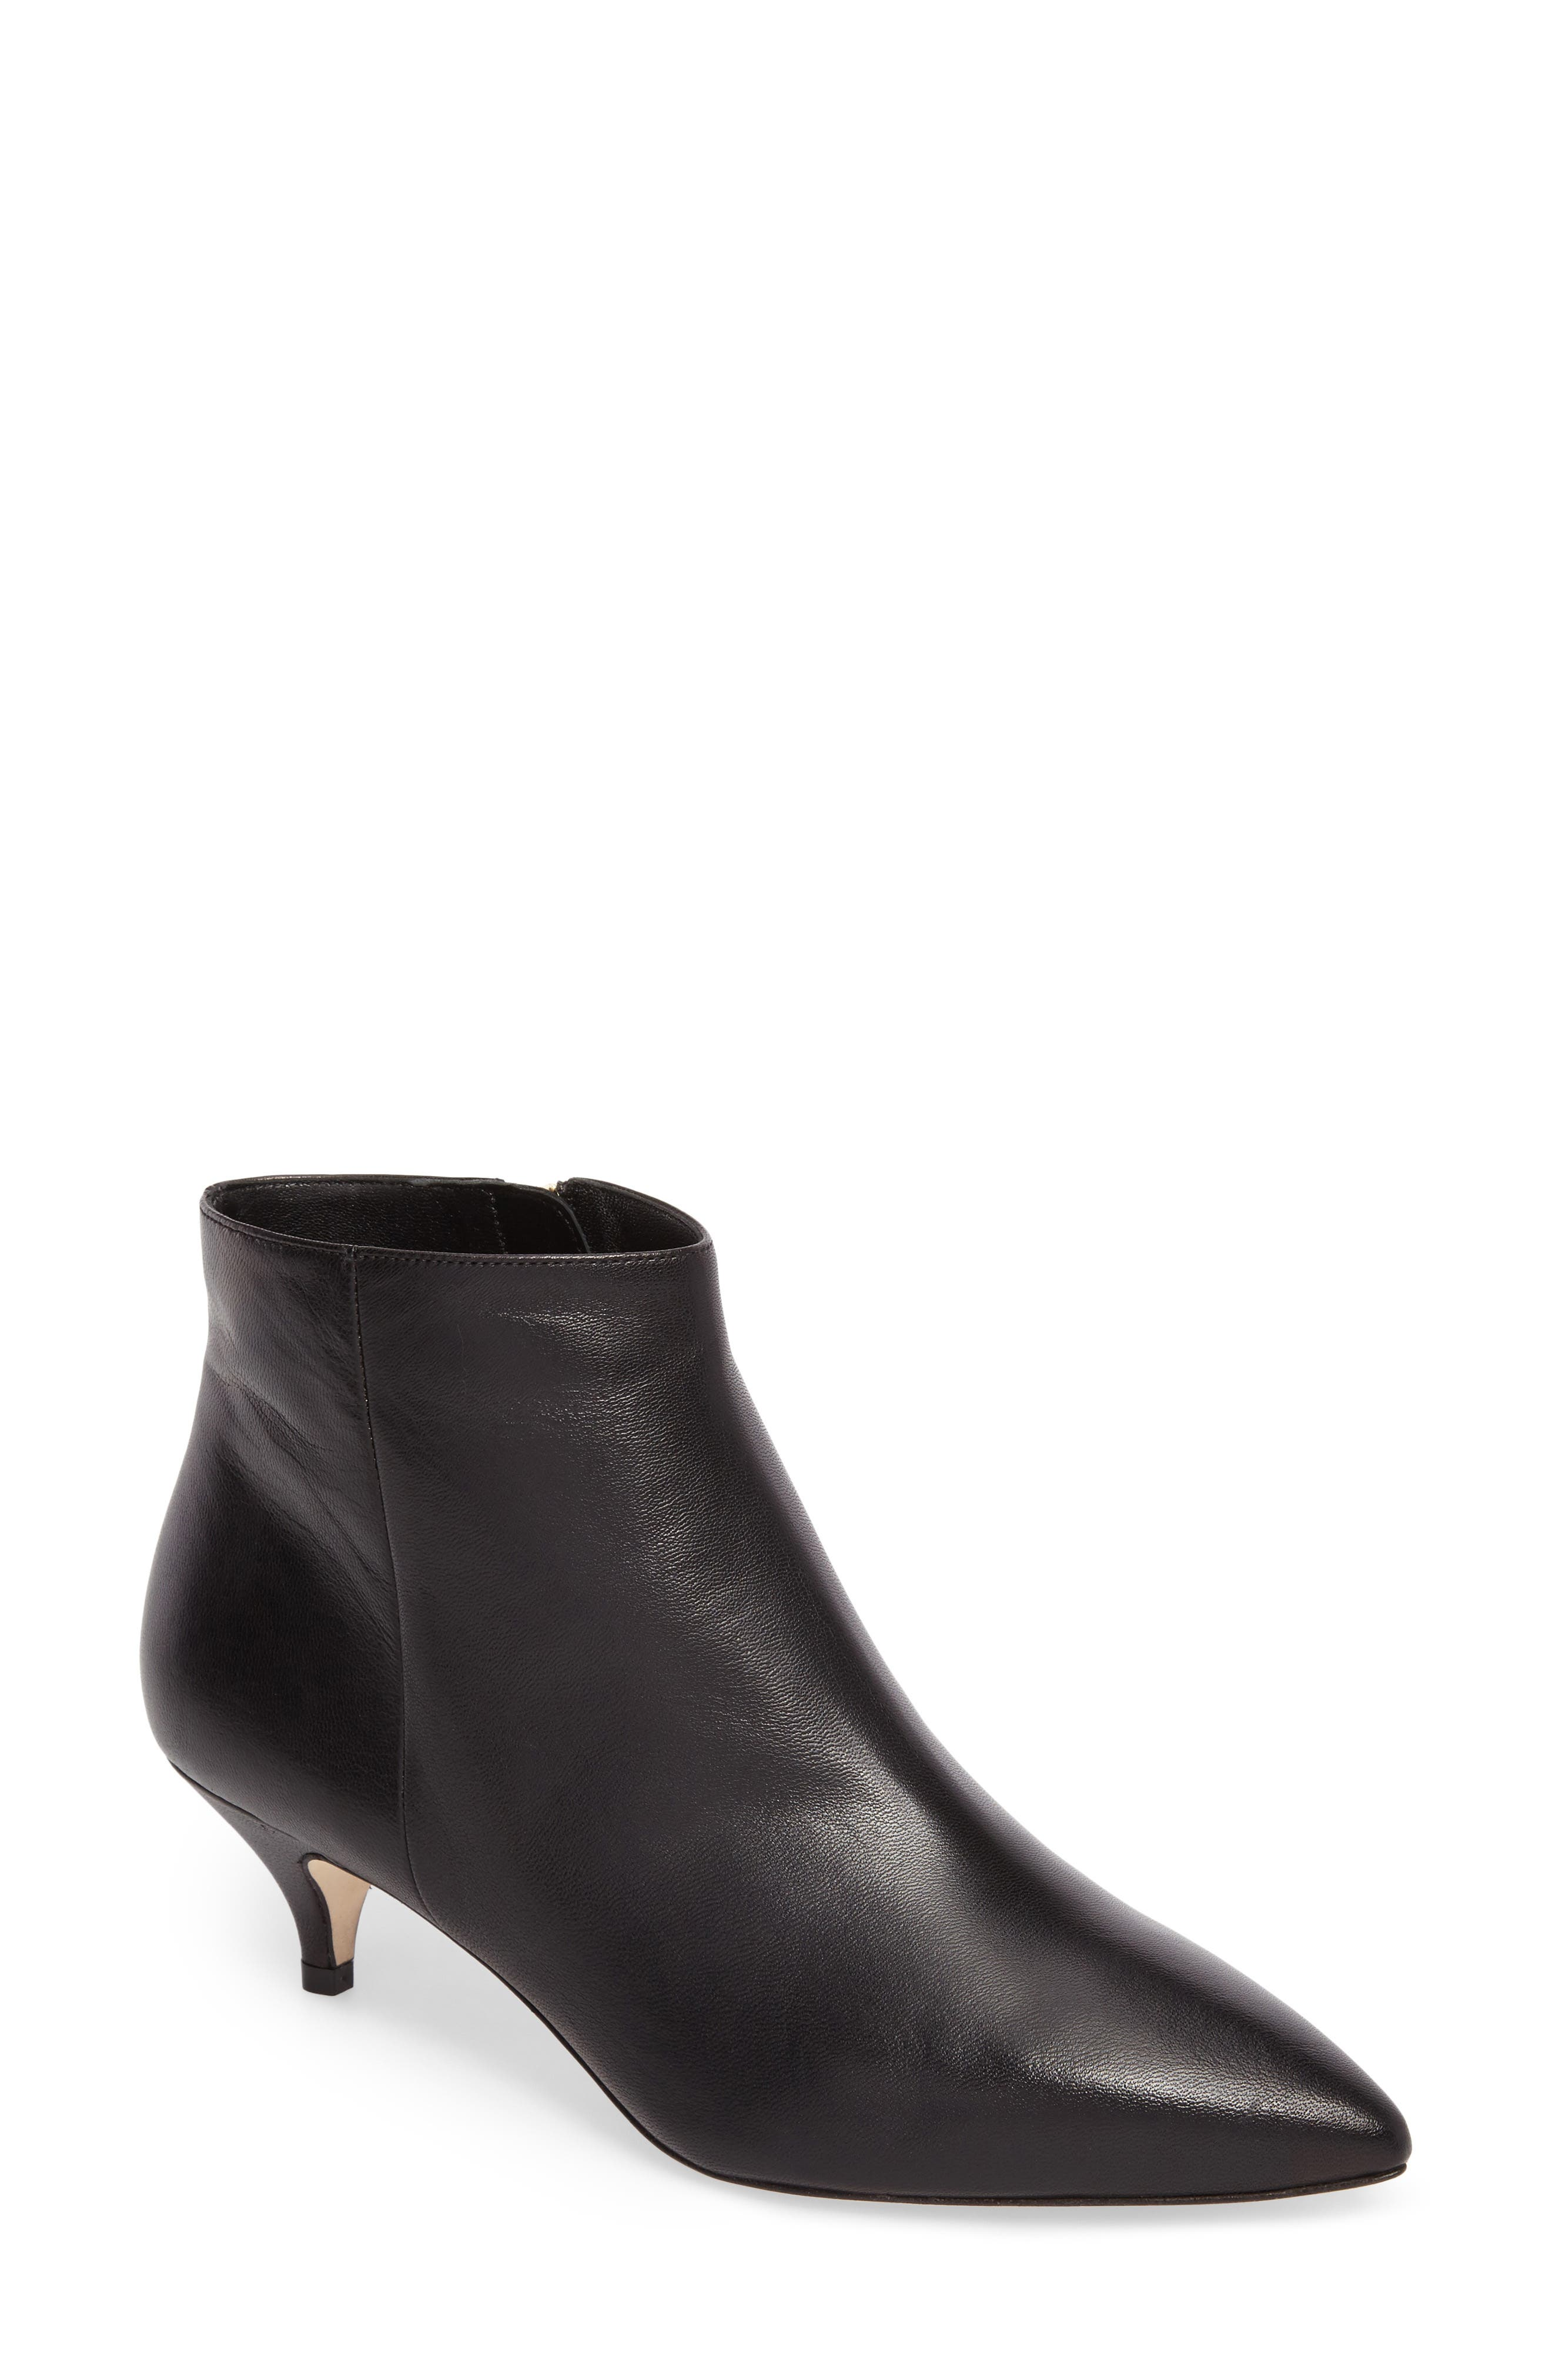 kate spade new york pointy toe bootie (Women)